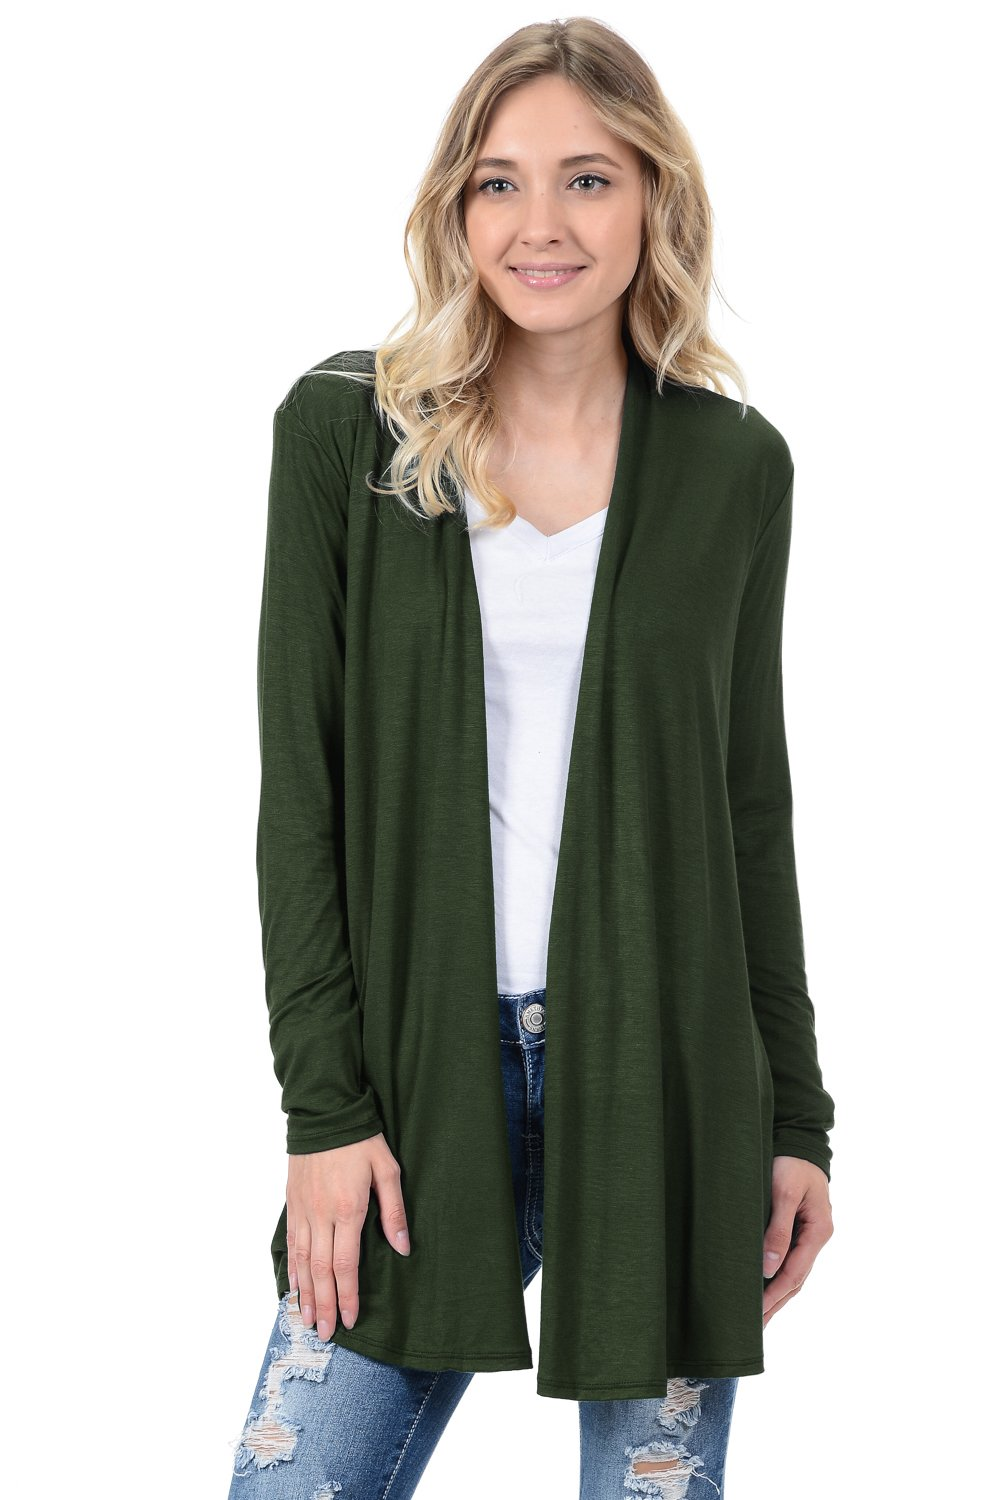 Pastel by Vivienne Women's Long Sleeve Jersey Cardigan X-Large Olive